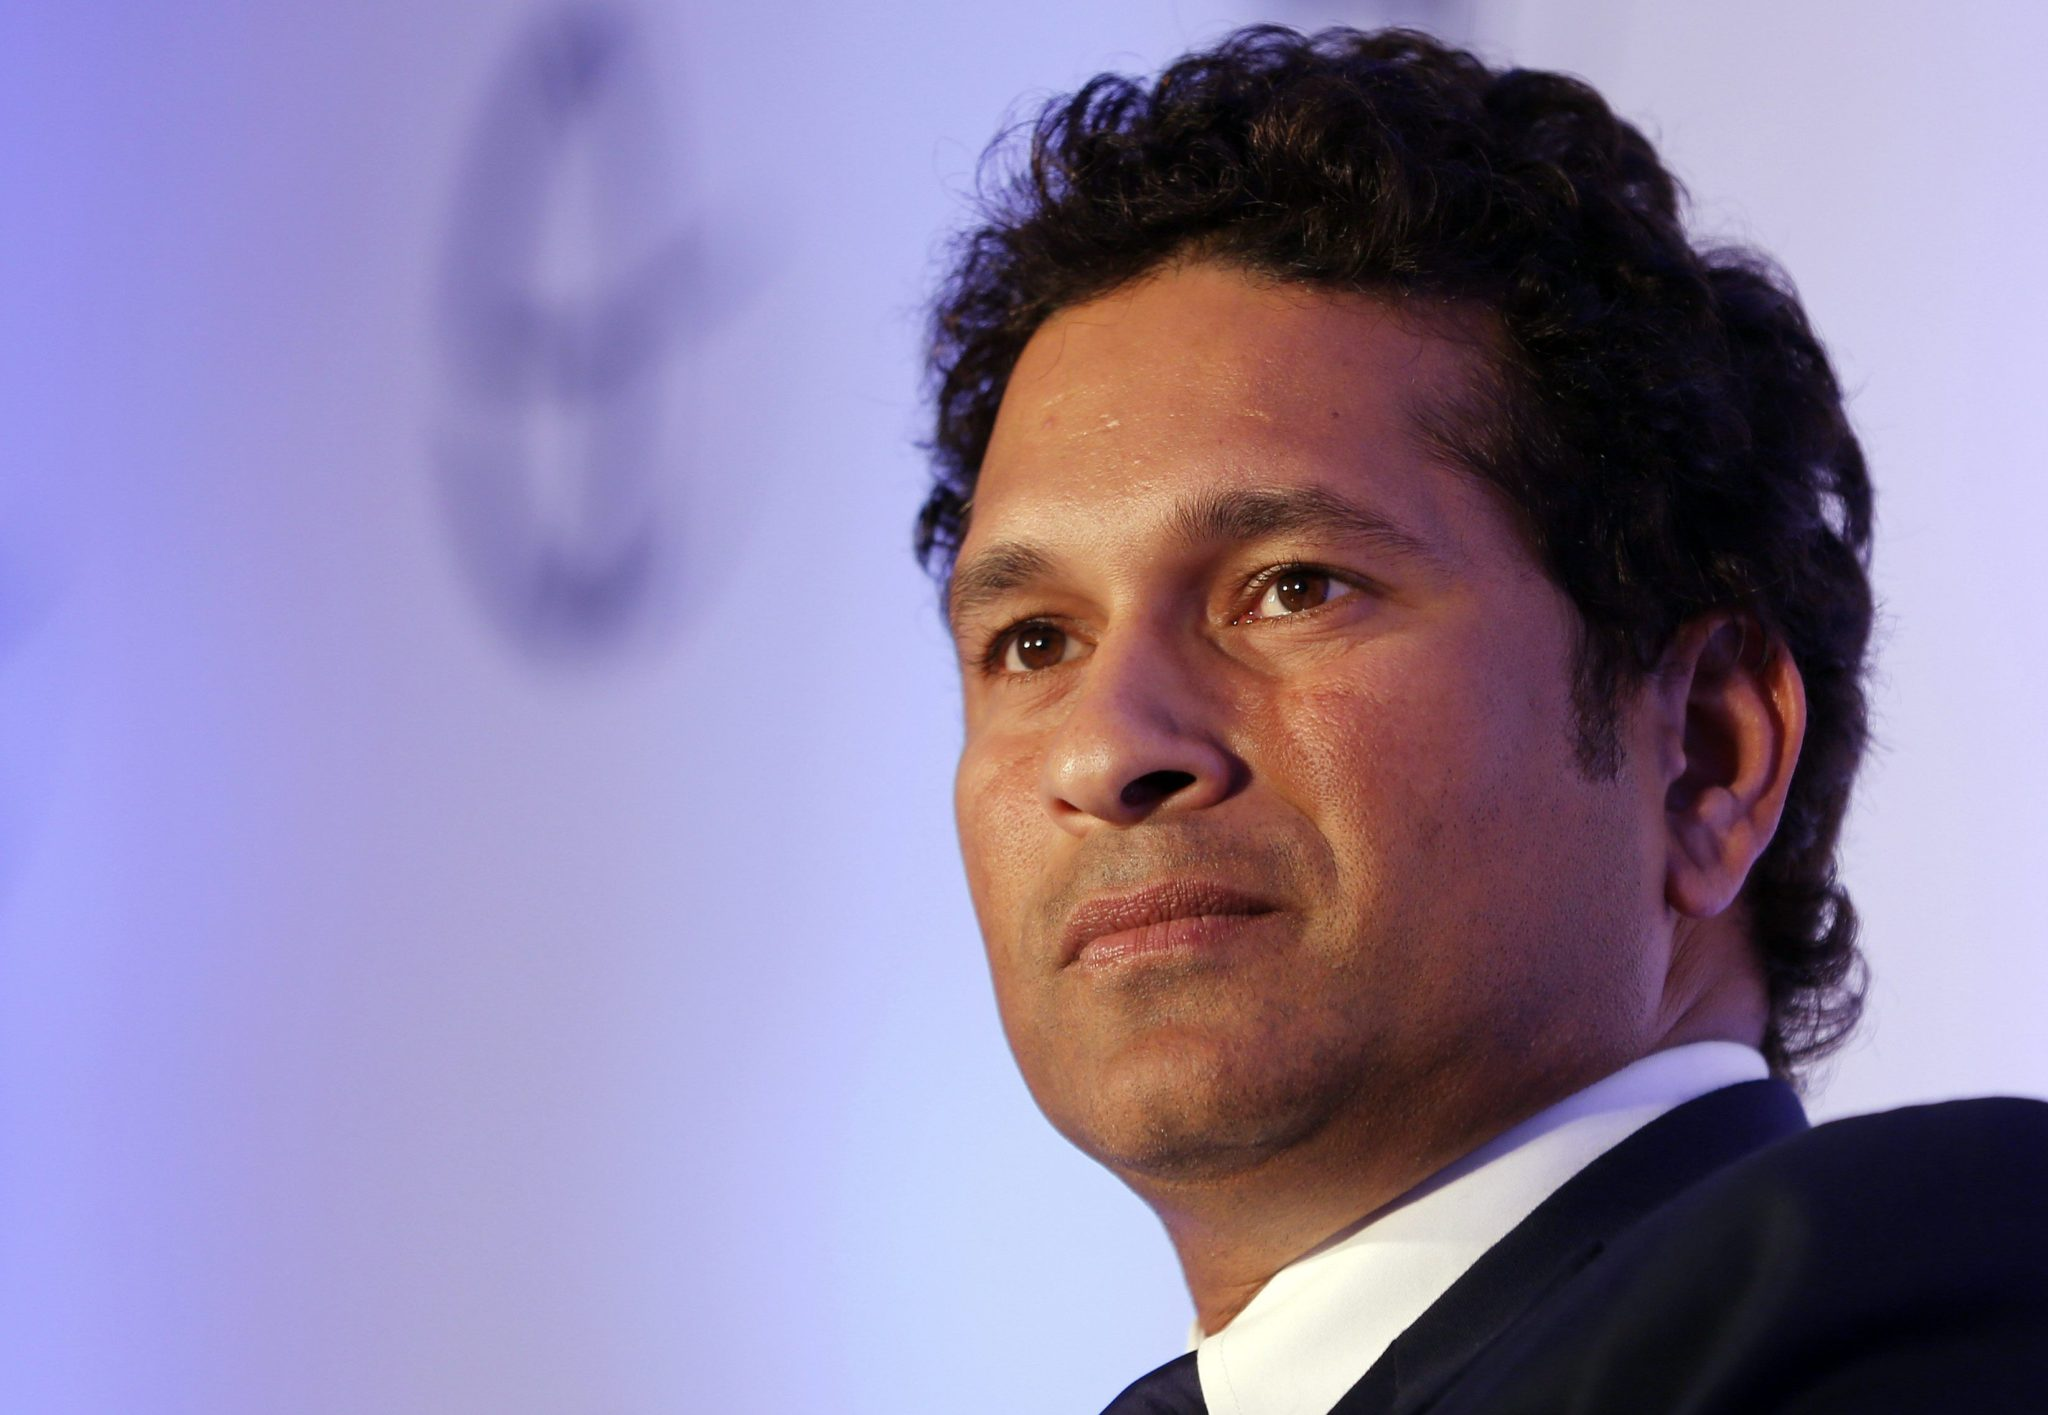 facts about sachin tendulkar